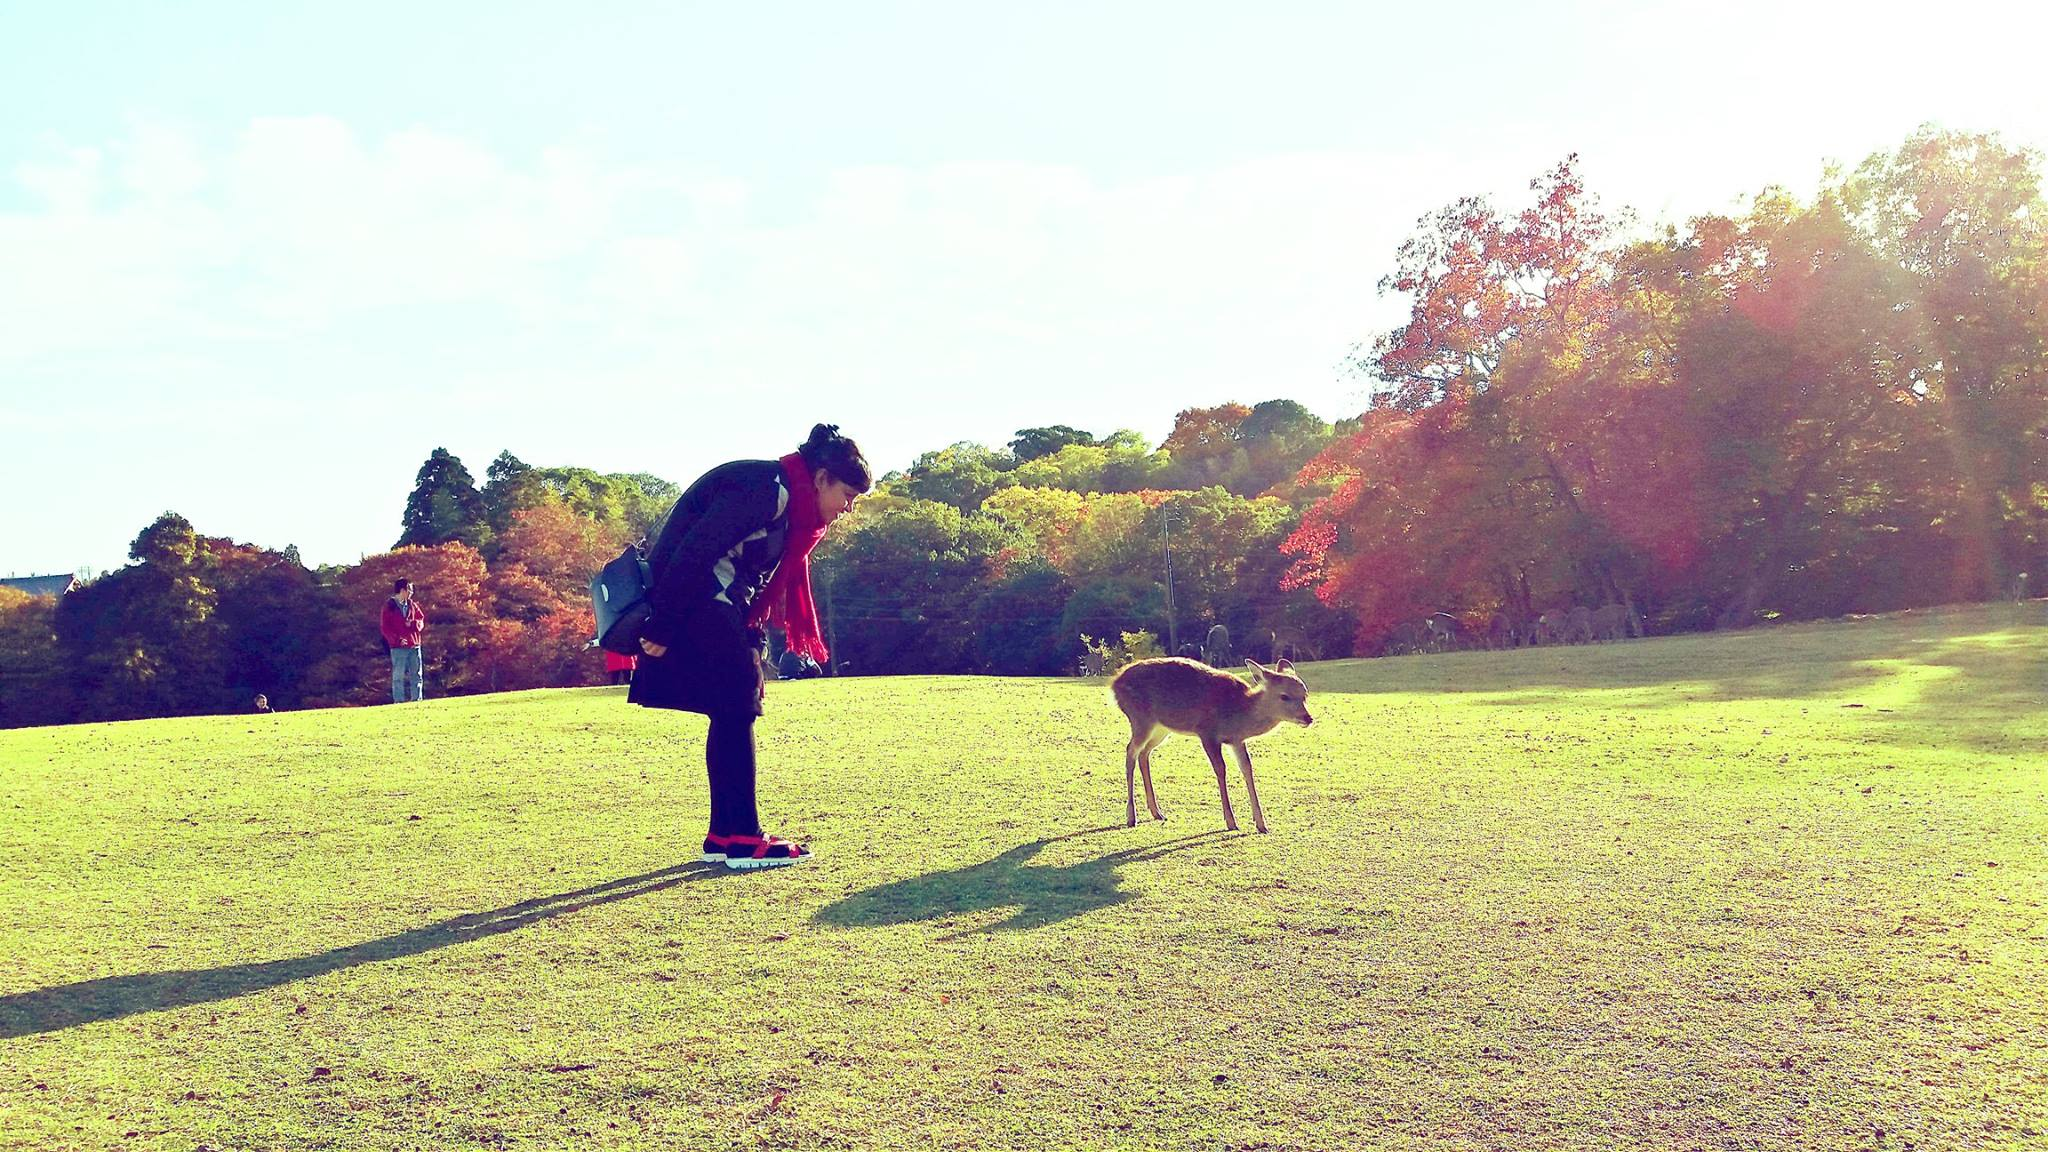 Deer Search in Nara